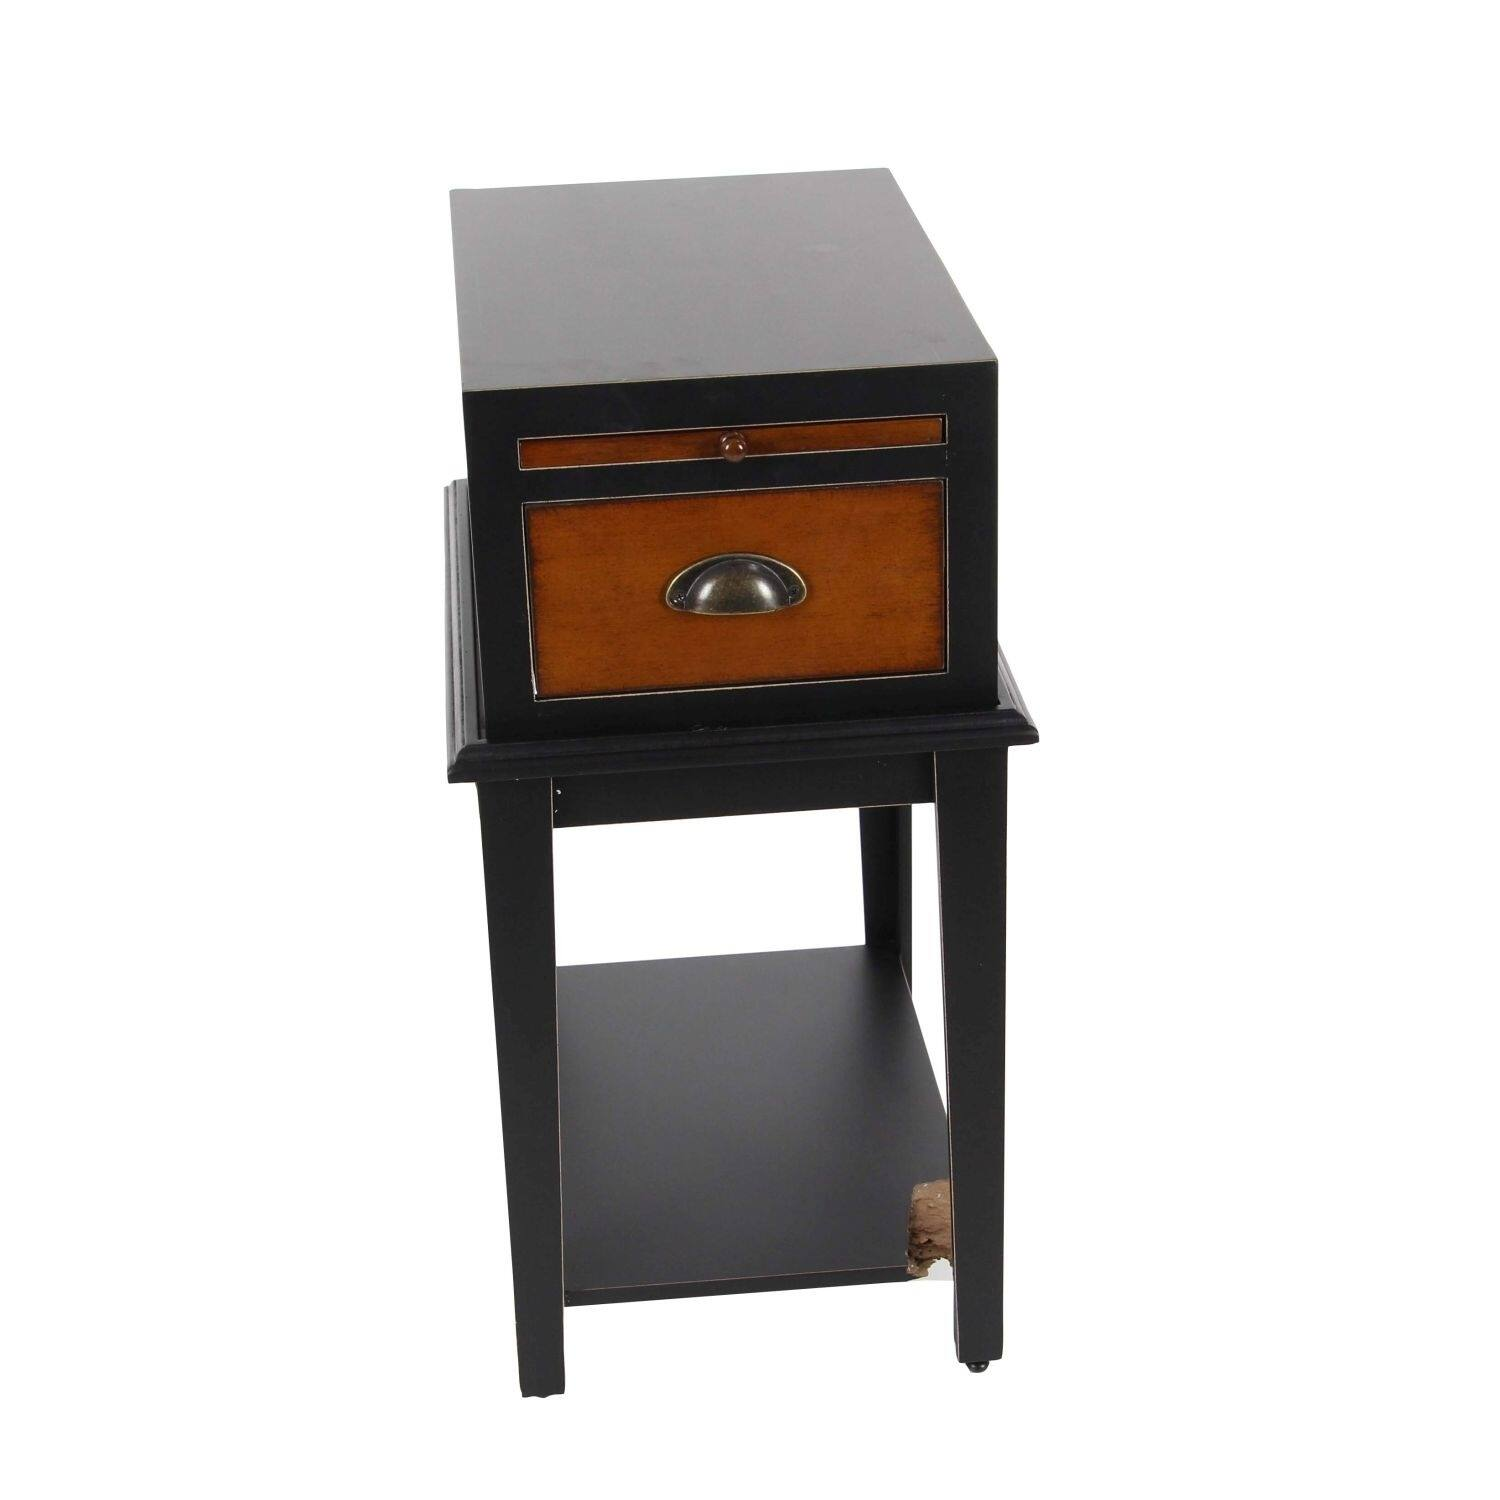 Coffee console sofa end tables for less for Coffee tables 18 inches wide